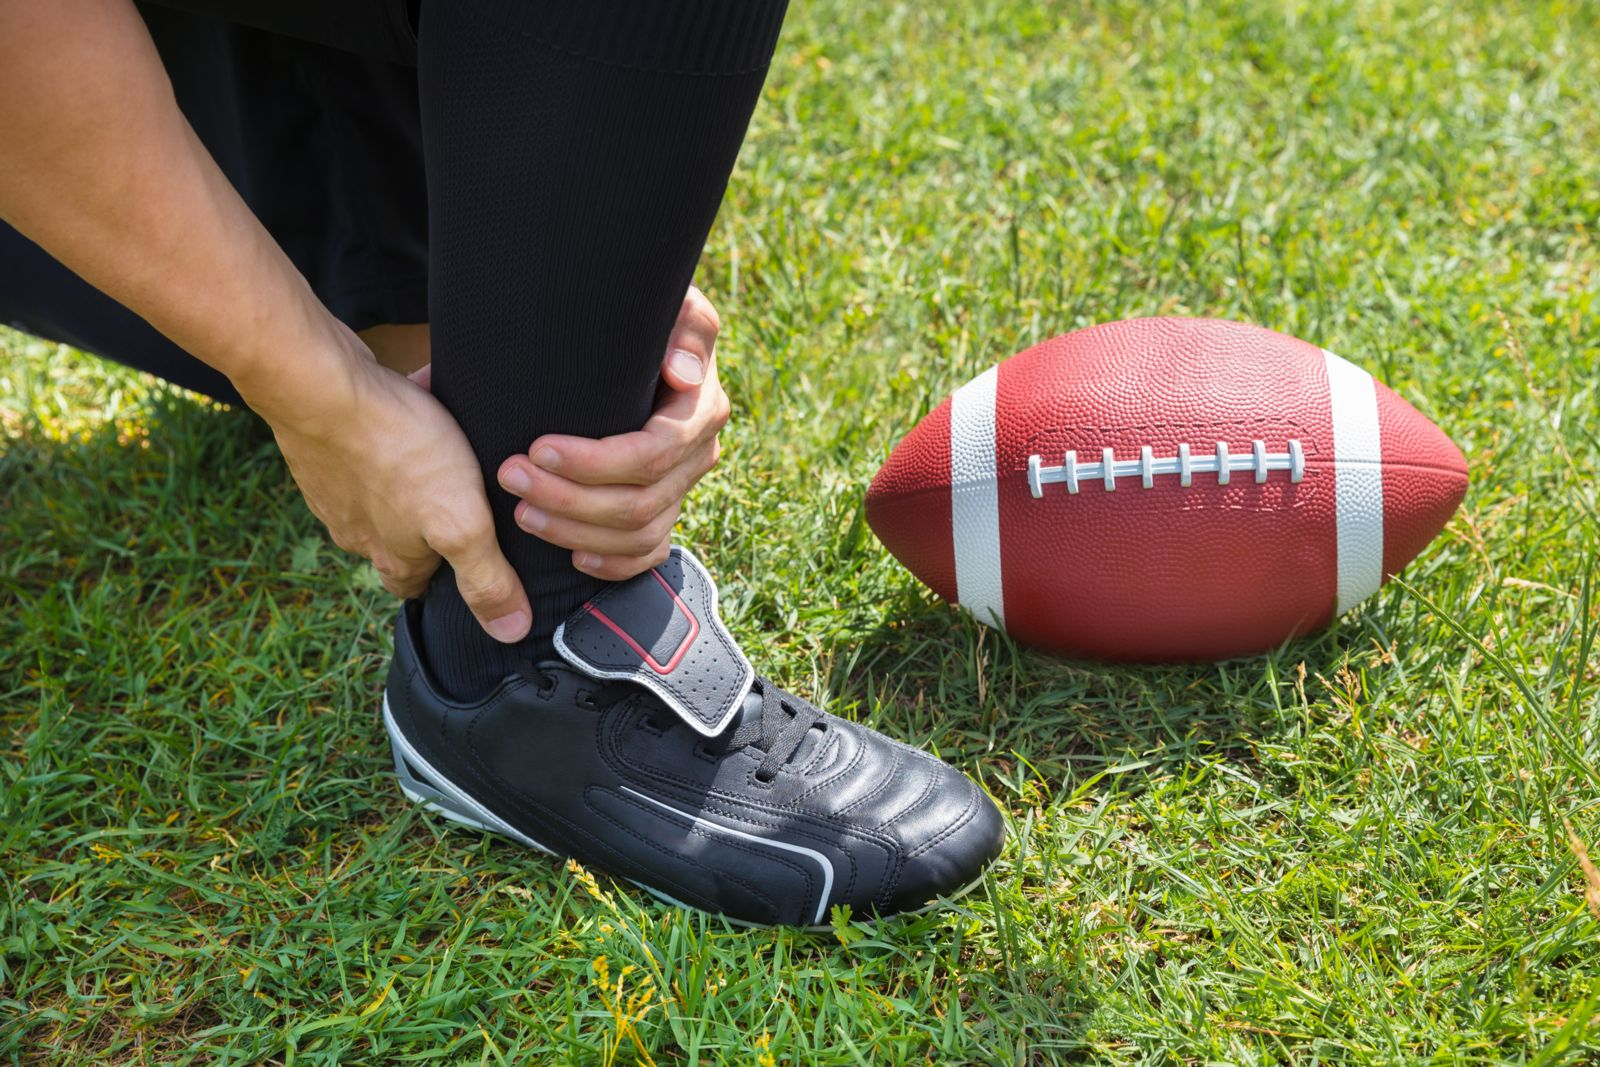 Houston podiatrist treats football injuries including plantar fasciitis, turf toe, lisfranc injuries, and achilles tendon tears